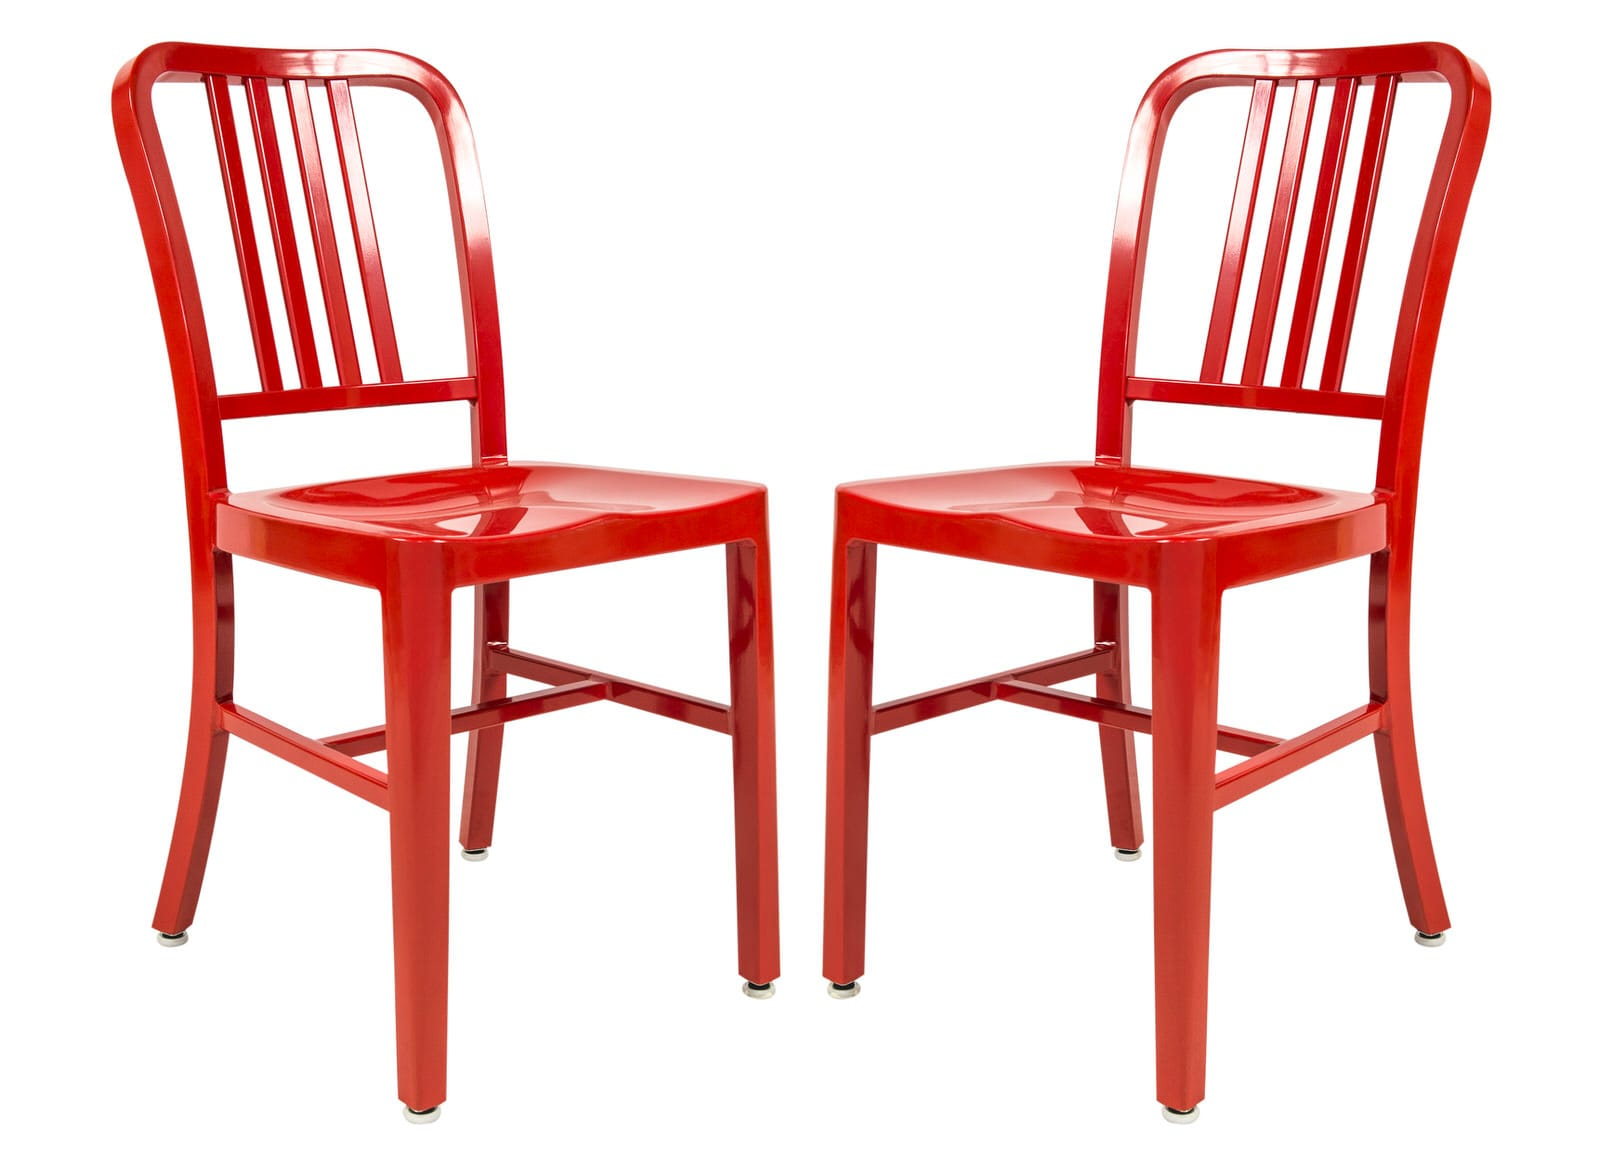 Outstanding Alton Modern Side Red Dining Chair Set Of 2 By Leisuremod Beatyapartments Chair Design Images Beatyapartmentscom